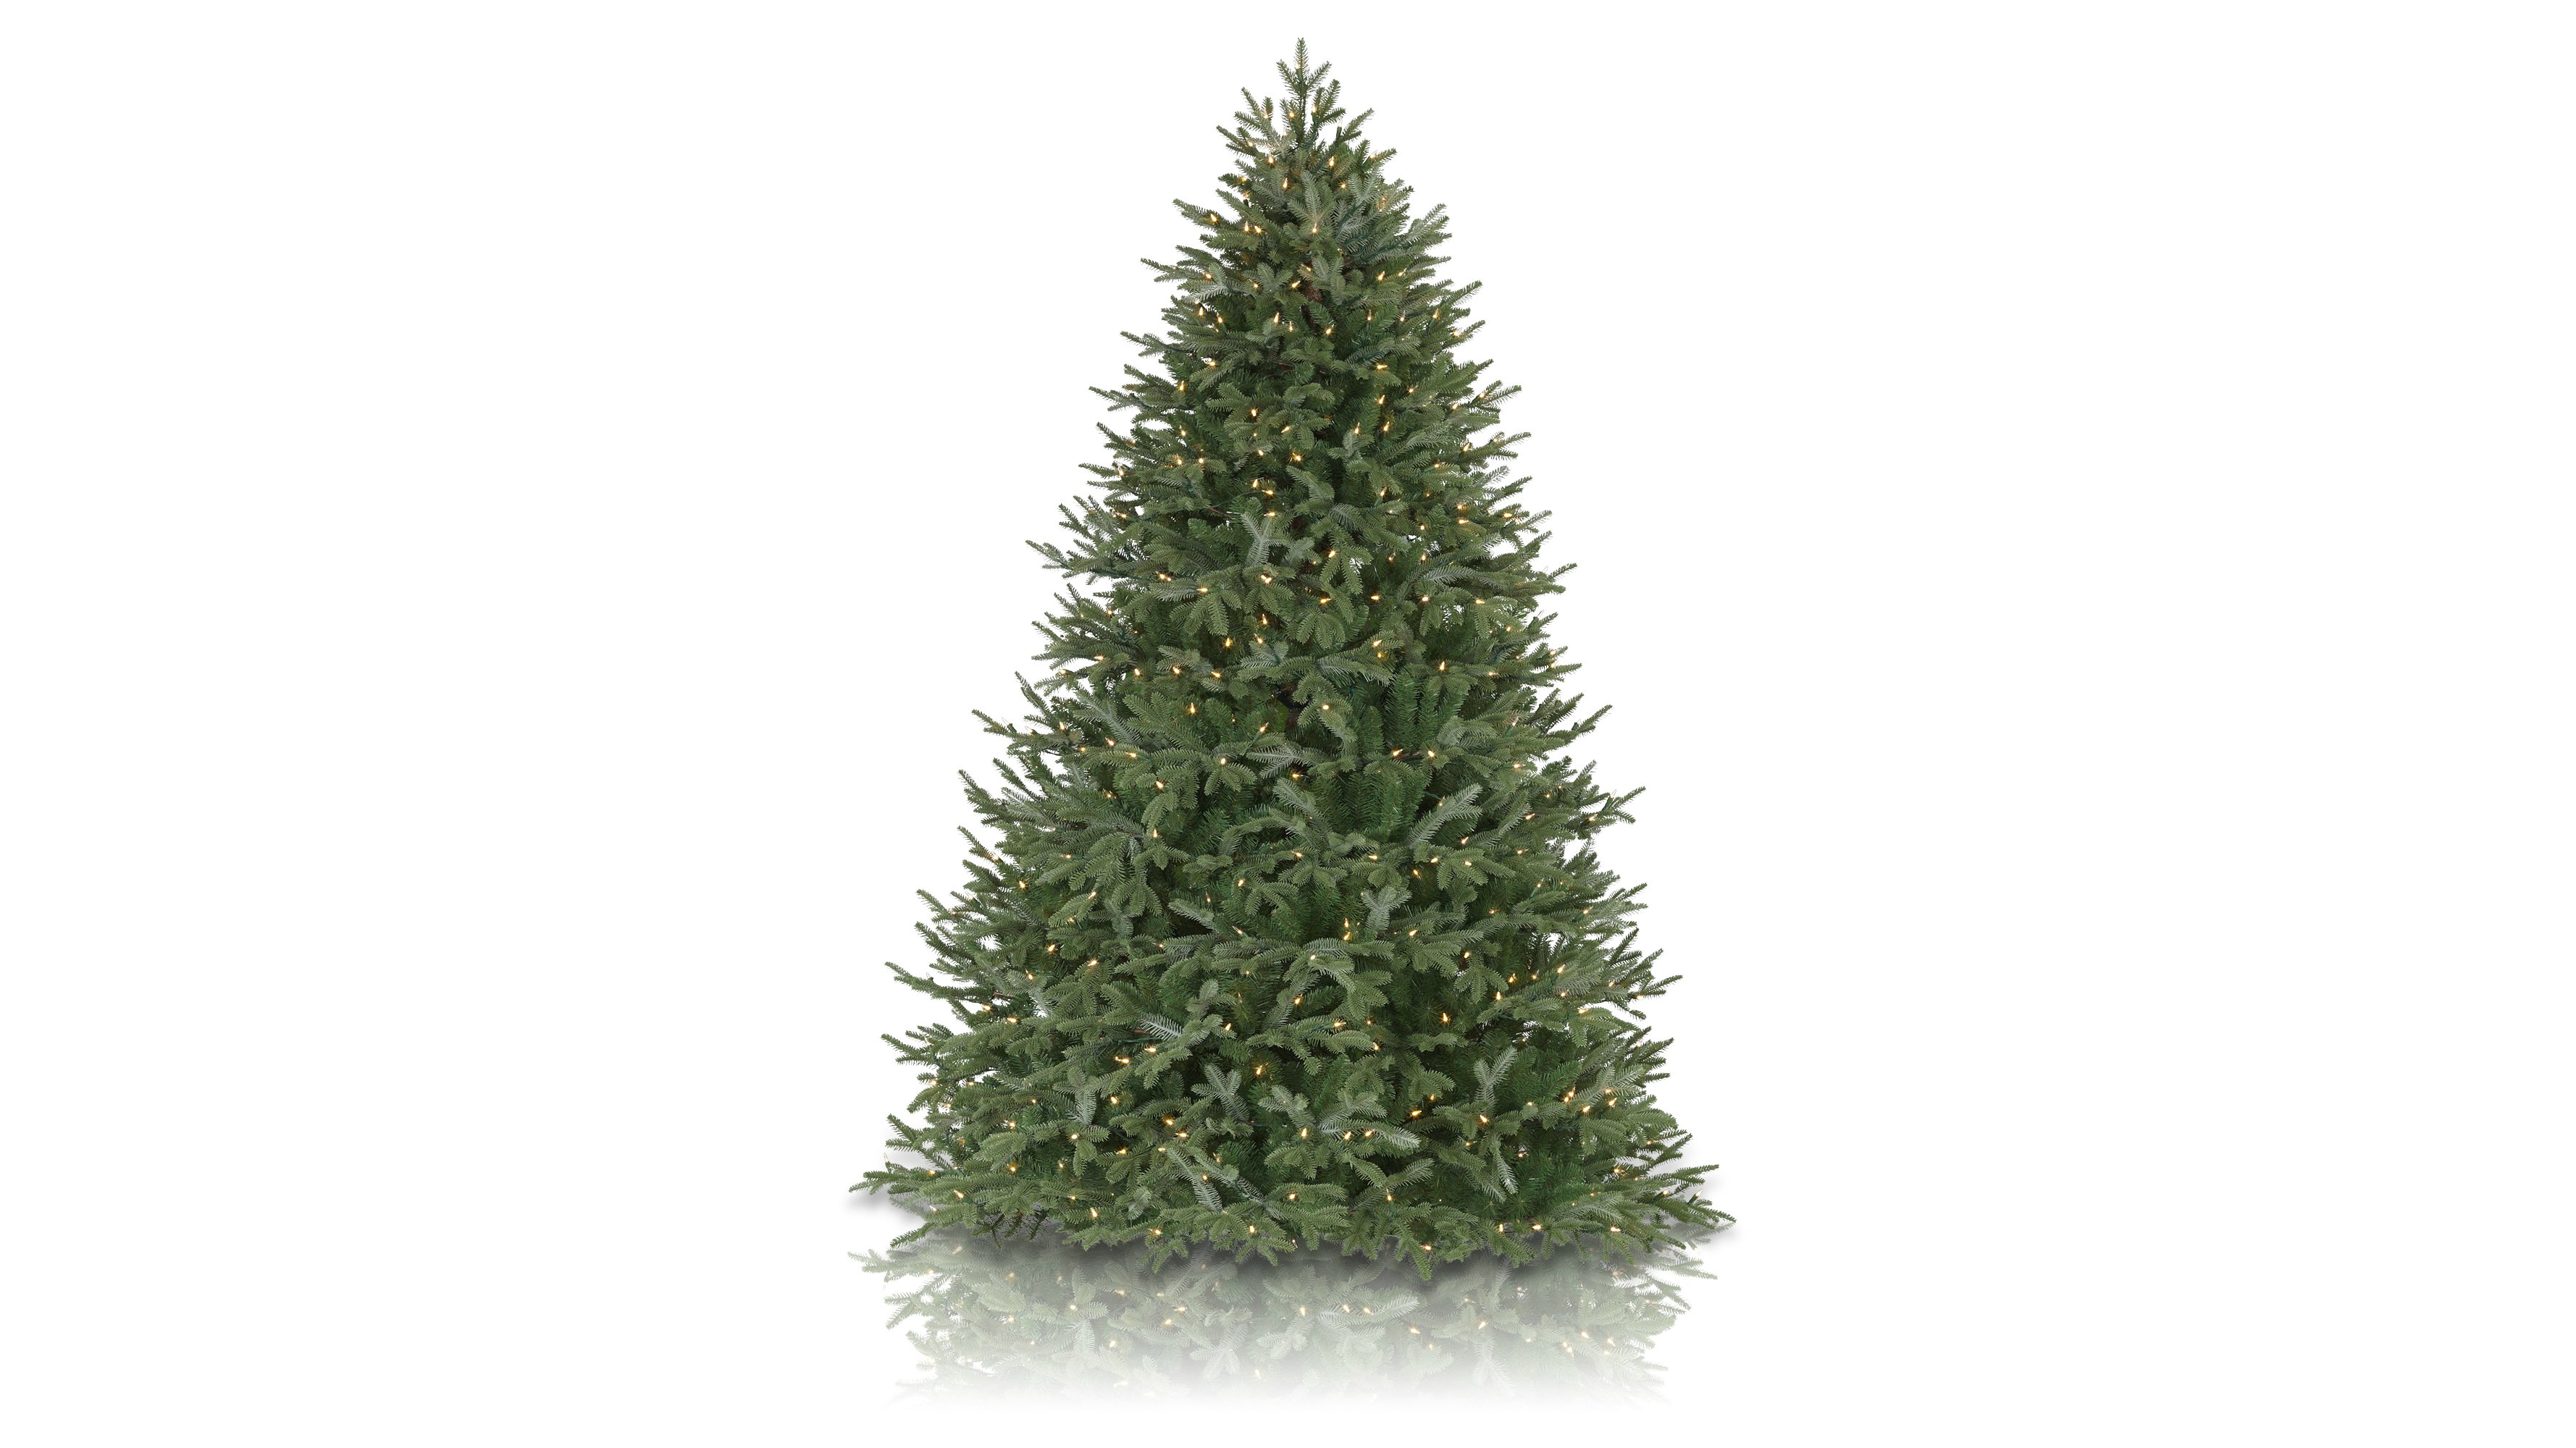 best artificial christmas trees 2018 have a hassle free xmas with our pick of the best artificial trees expert reviews